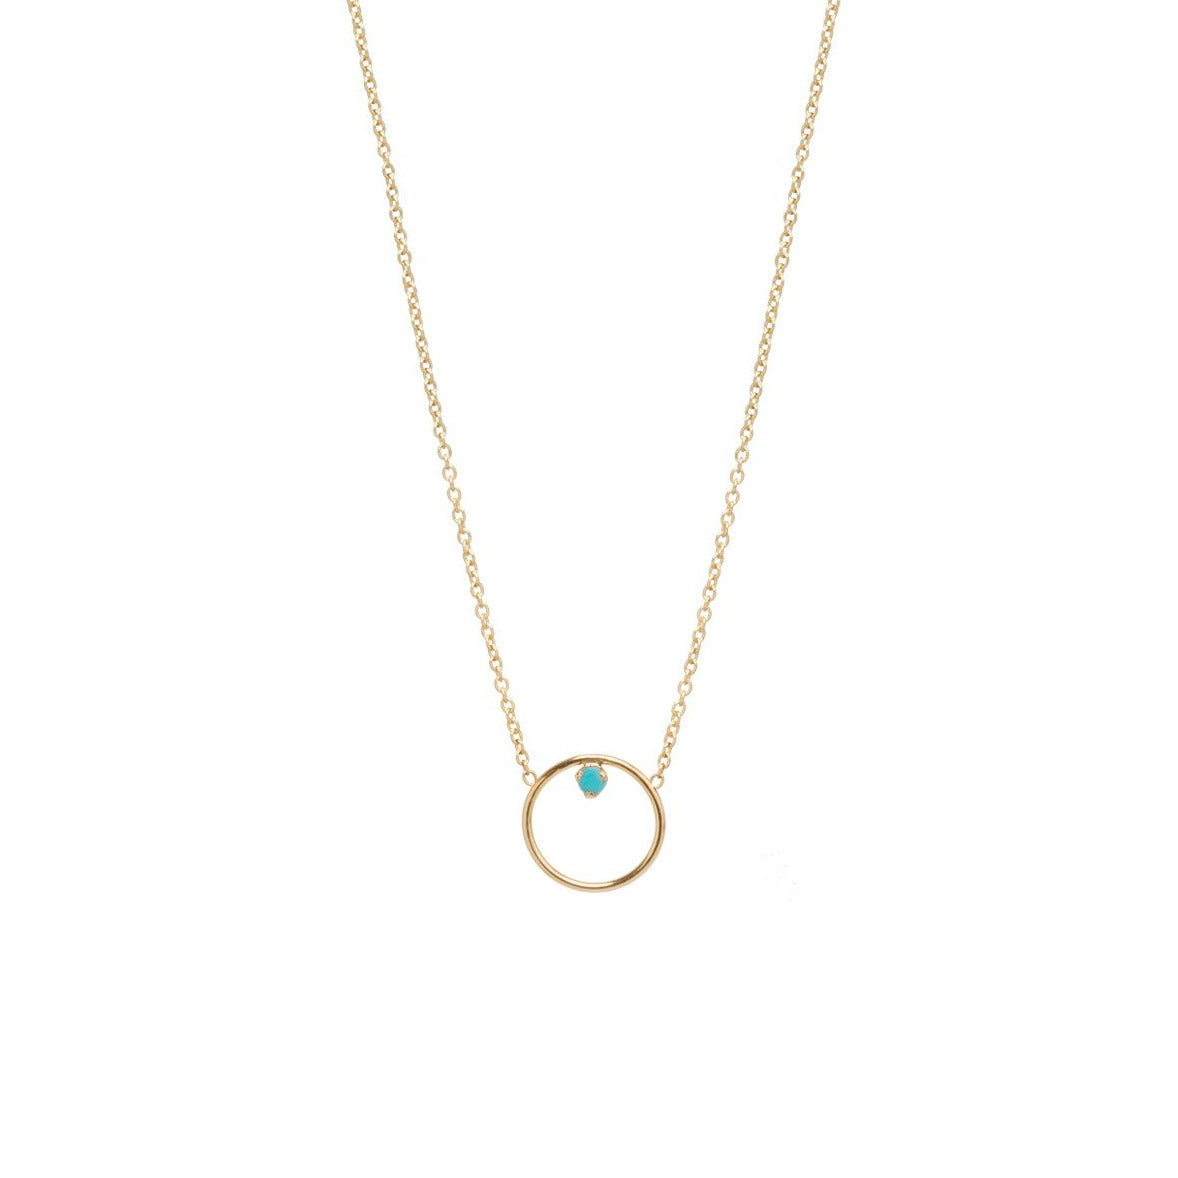 Zoe Chicco 14k Circle Prong Turquoise Necklace